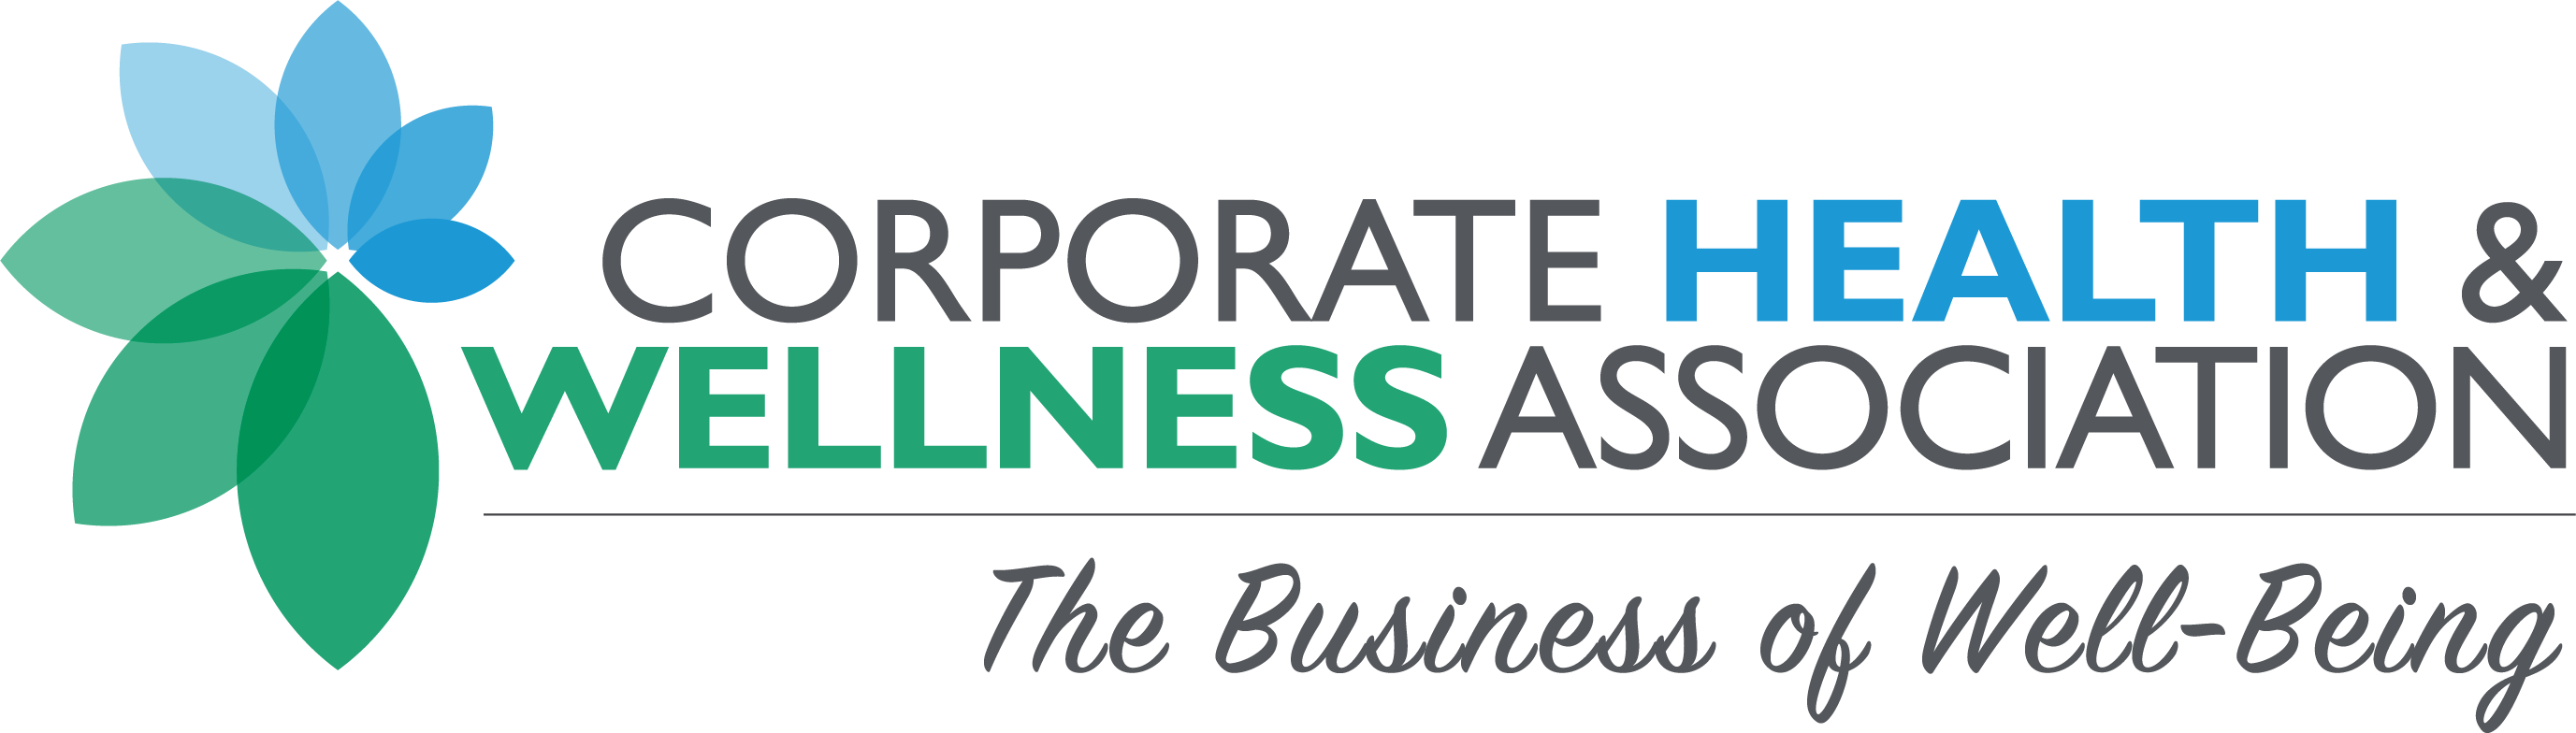 Corporate Health & Wellness Association Logo